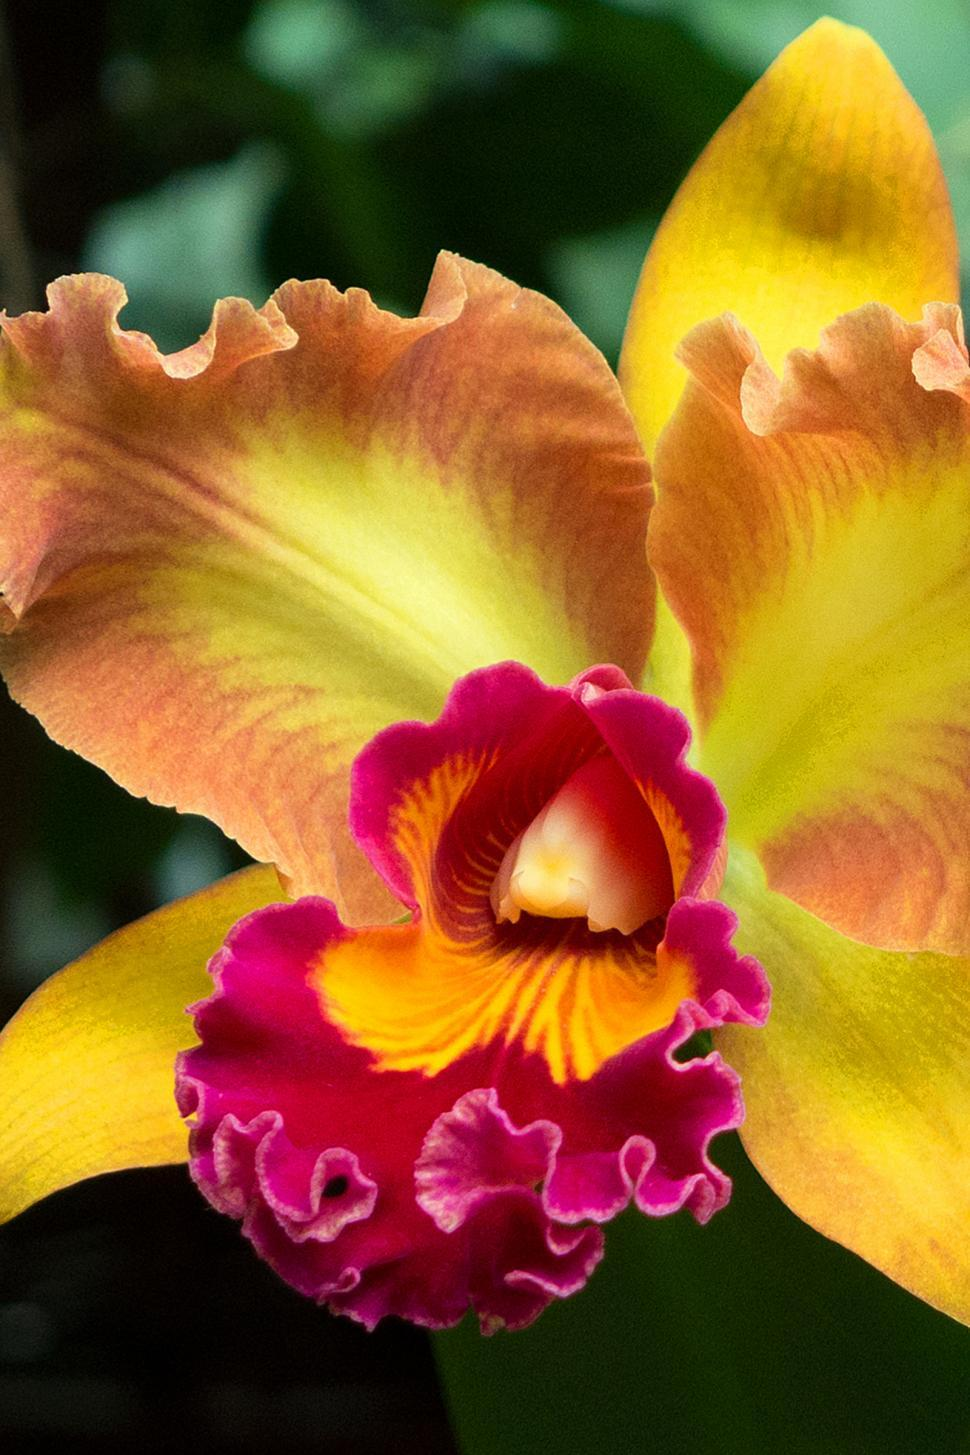 Download Free Stock Photo of Yellow Red Flower Cattleya Orchid Bloom